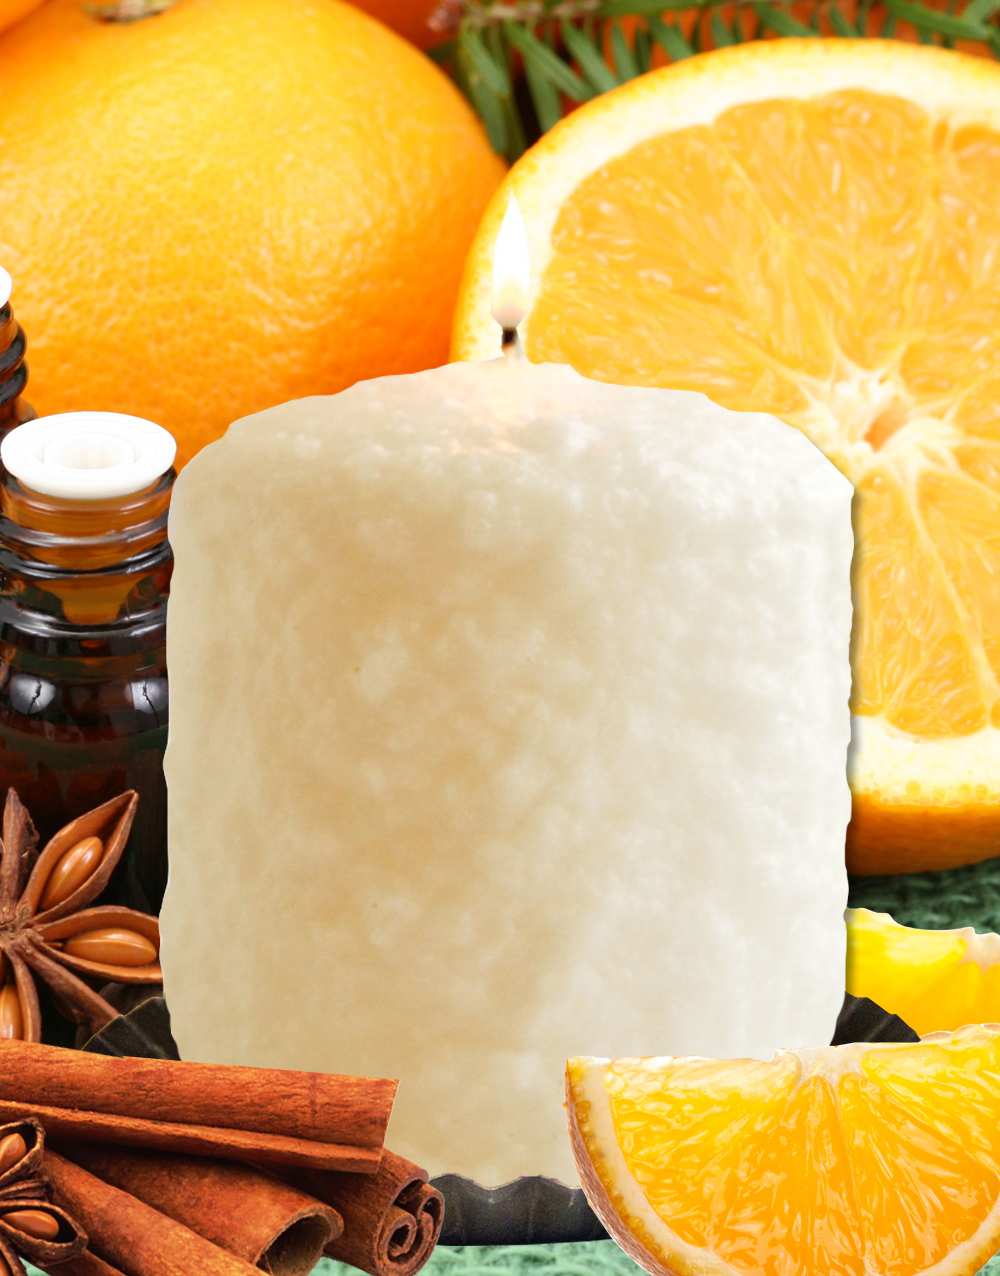 Spicy Citrus Hearth Candle